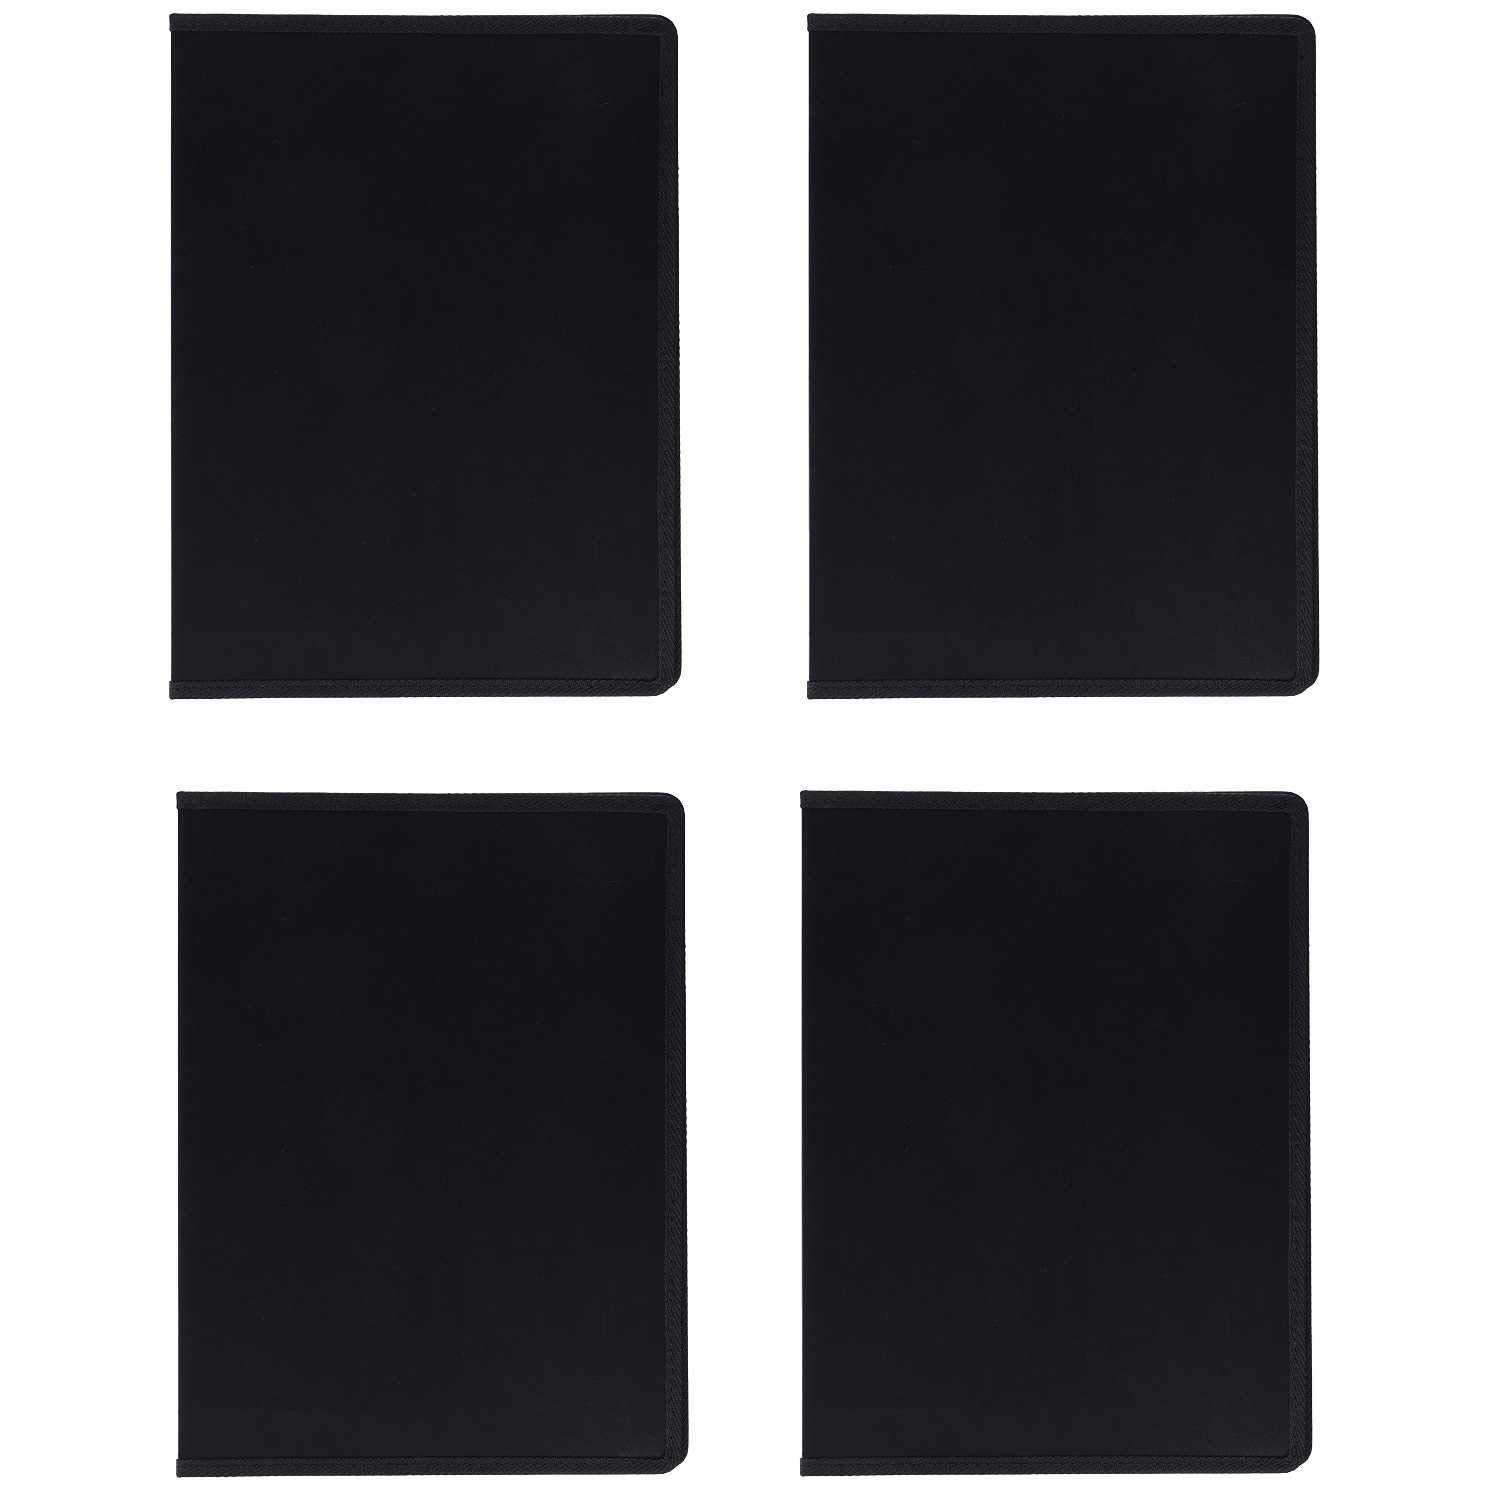 Itoya Art Profolio Evolution 9x12 Presentation/Display Book (Black, 4 Pack) by ITOYA